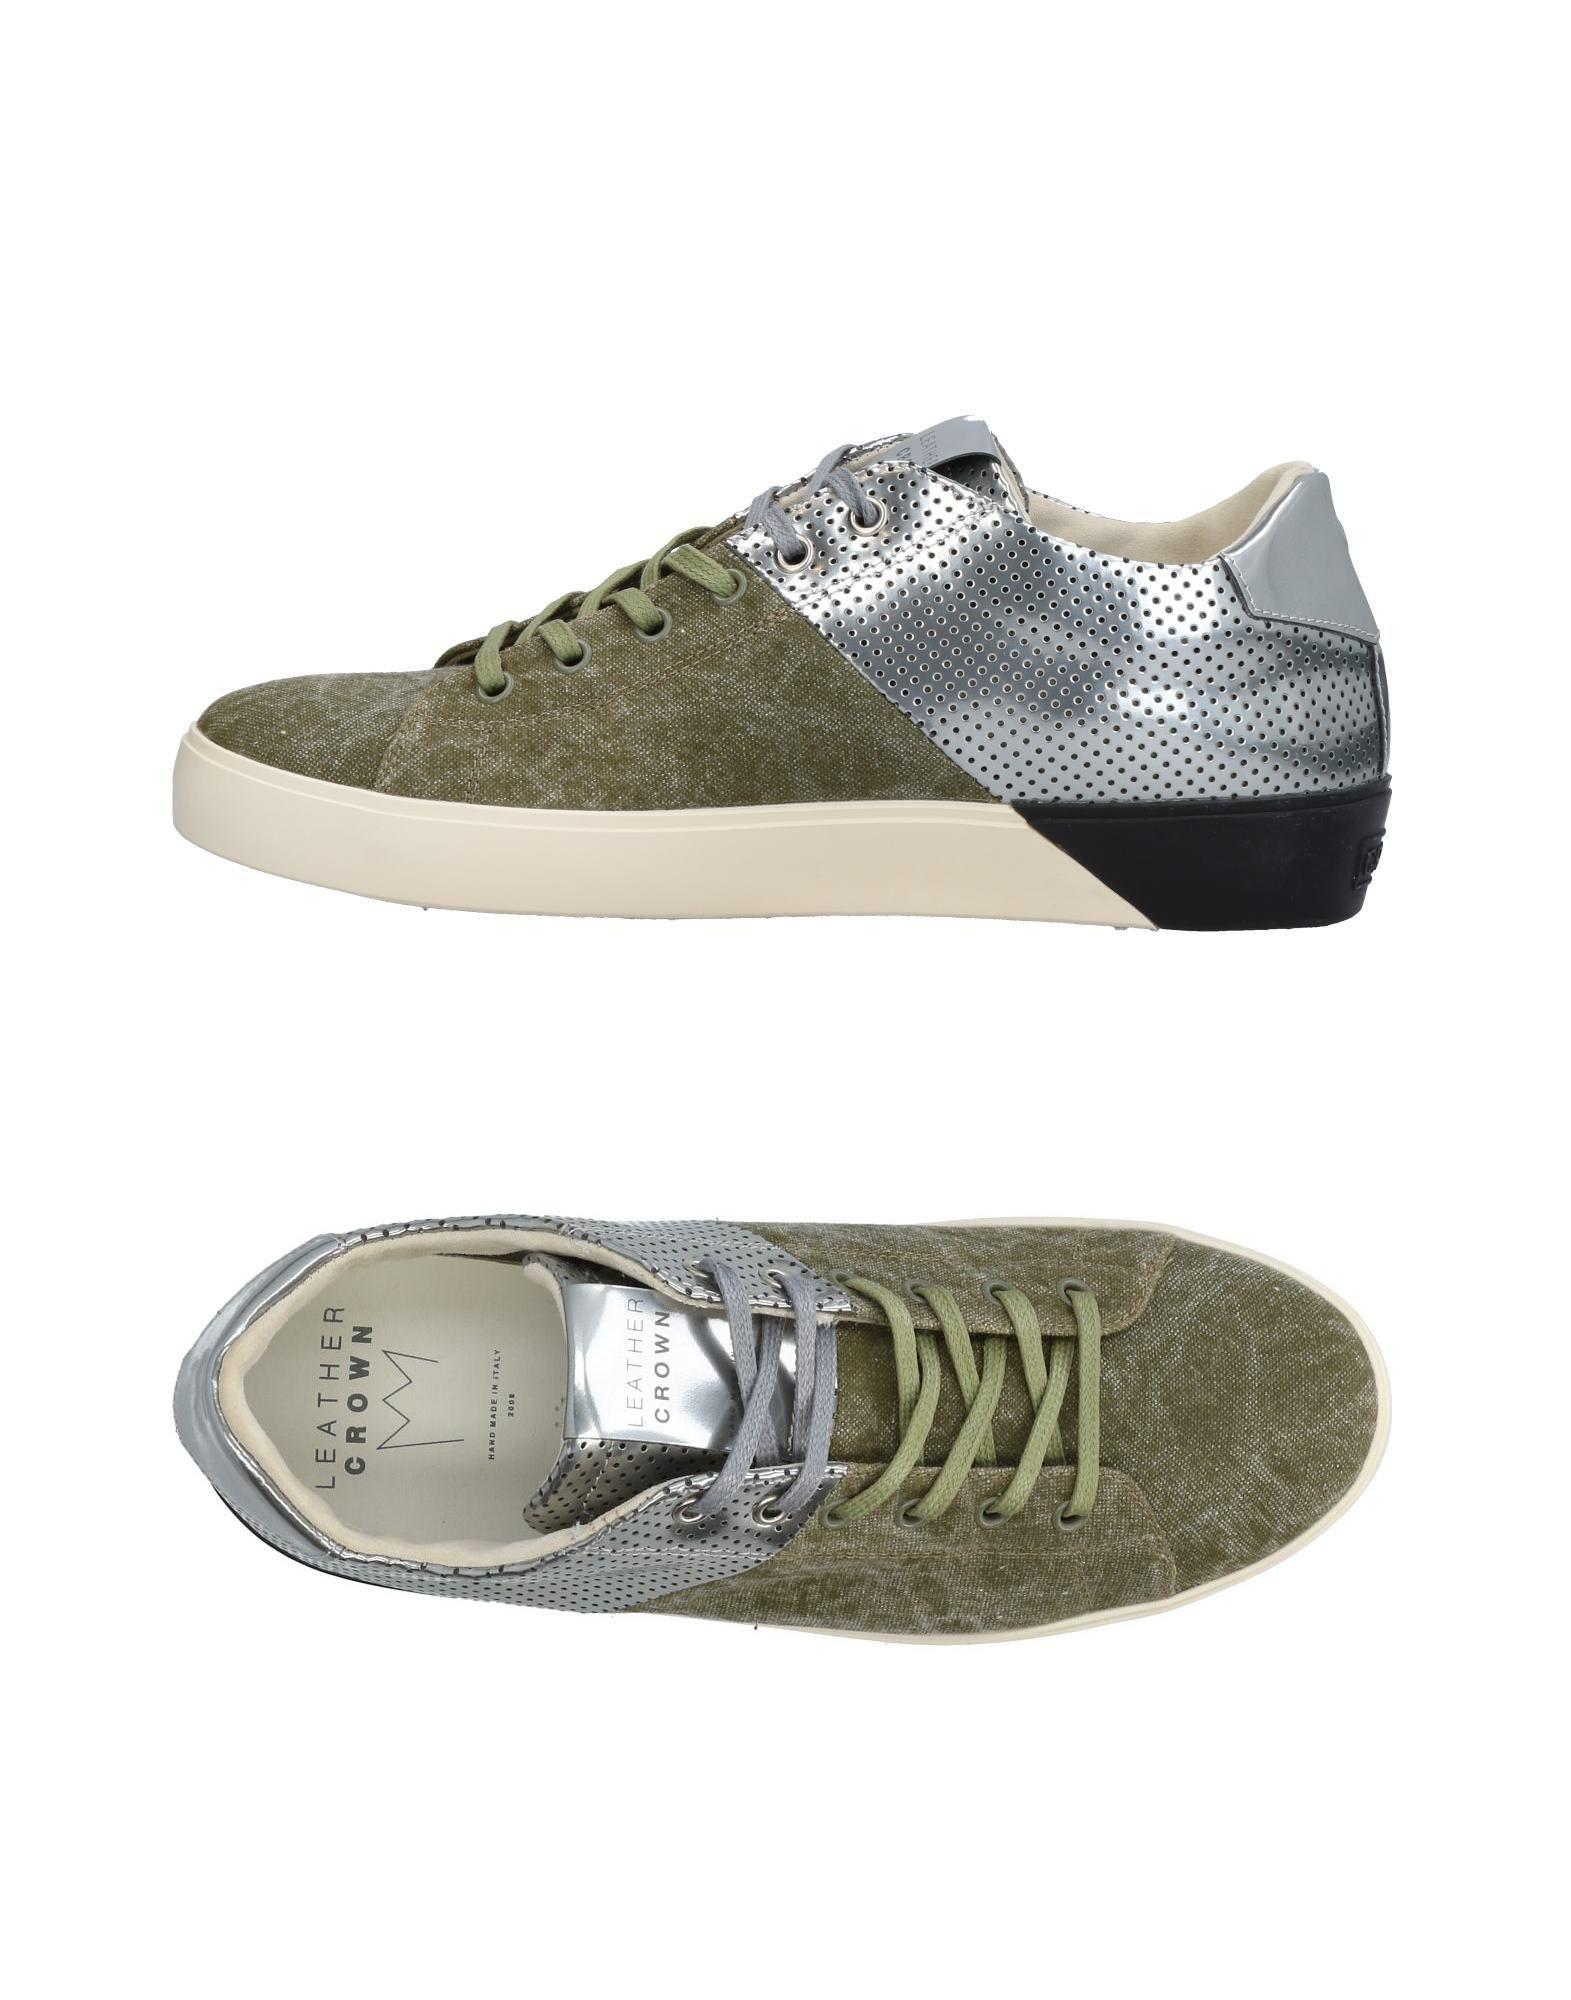 FOOTWEAR - Low-tops & sneakers Leather Crown CiQ8x